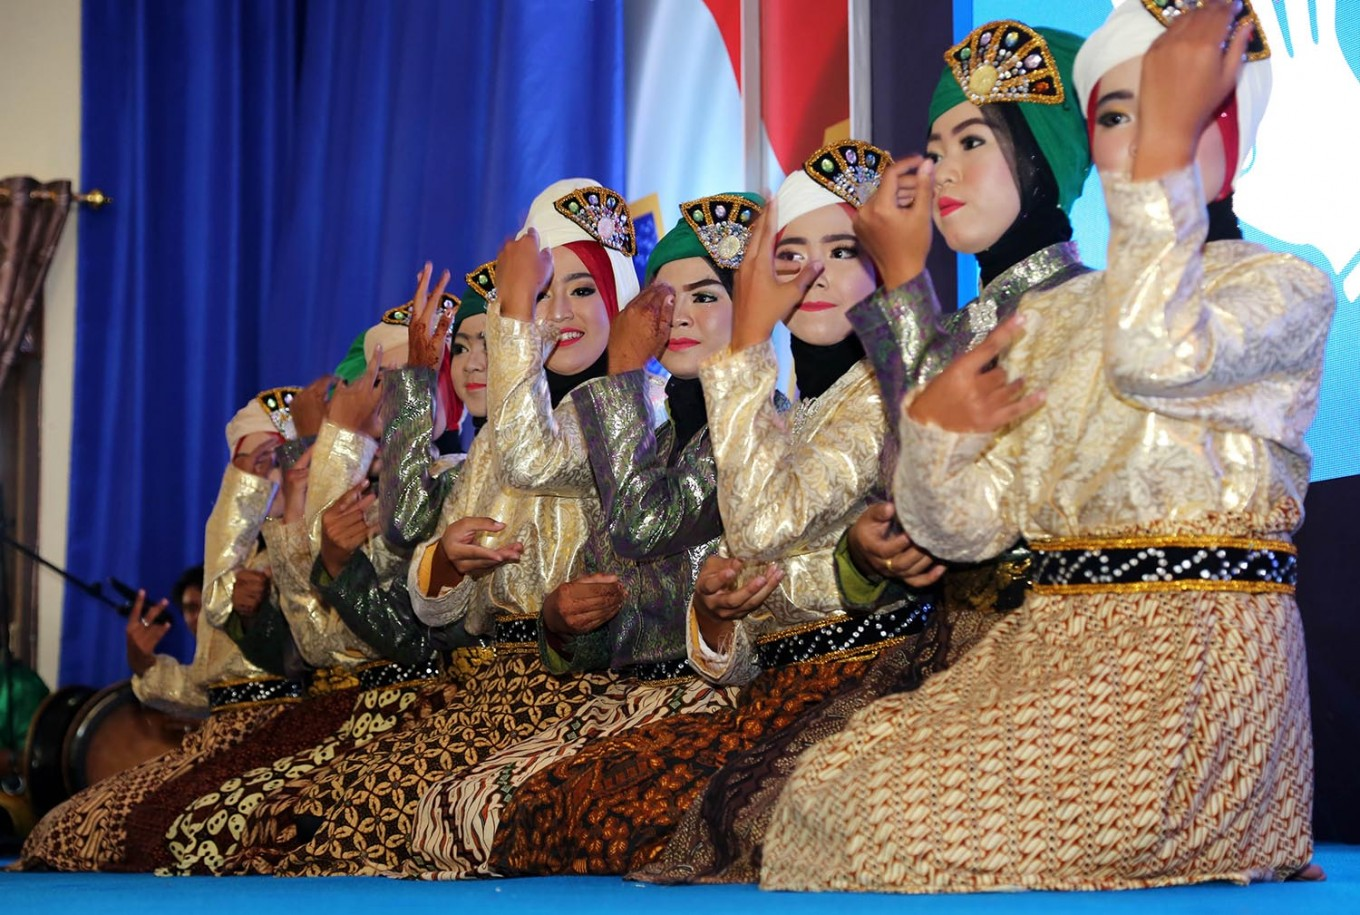 Harmonious: Students of a state high school in Sabang city, Weh Island, perform the Ratoe Jaroh dance during the Quota Donation Movement program presented by mobile services operator XL Axiata. Unlike the Saman dance, which is performed by an odd-numbered group of men, the Ratoe Jaroh dance must be performed by an even number of women. JP/ PJ Leo